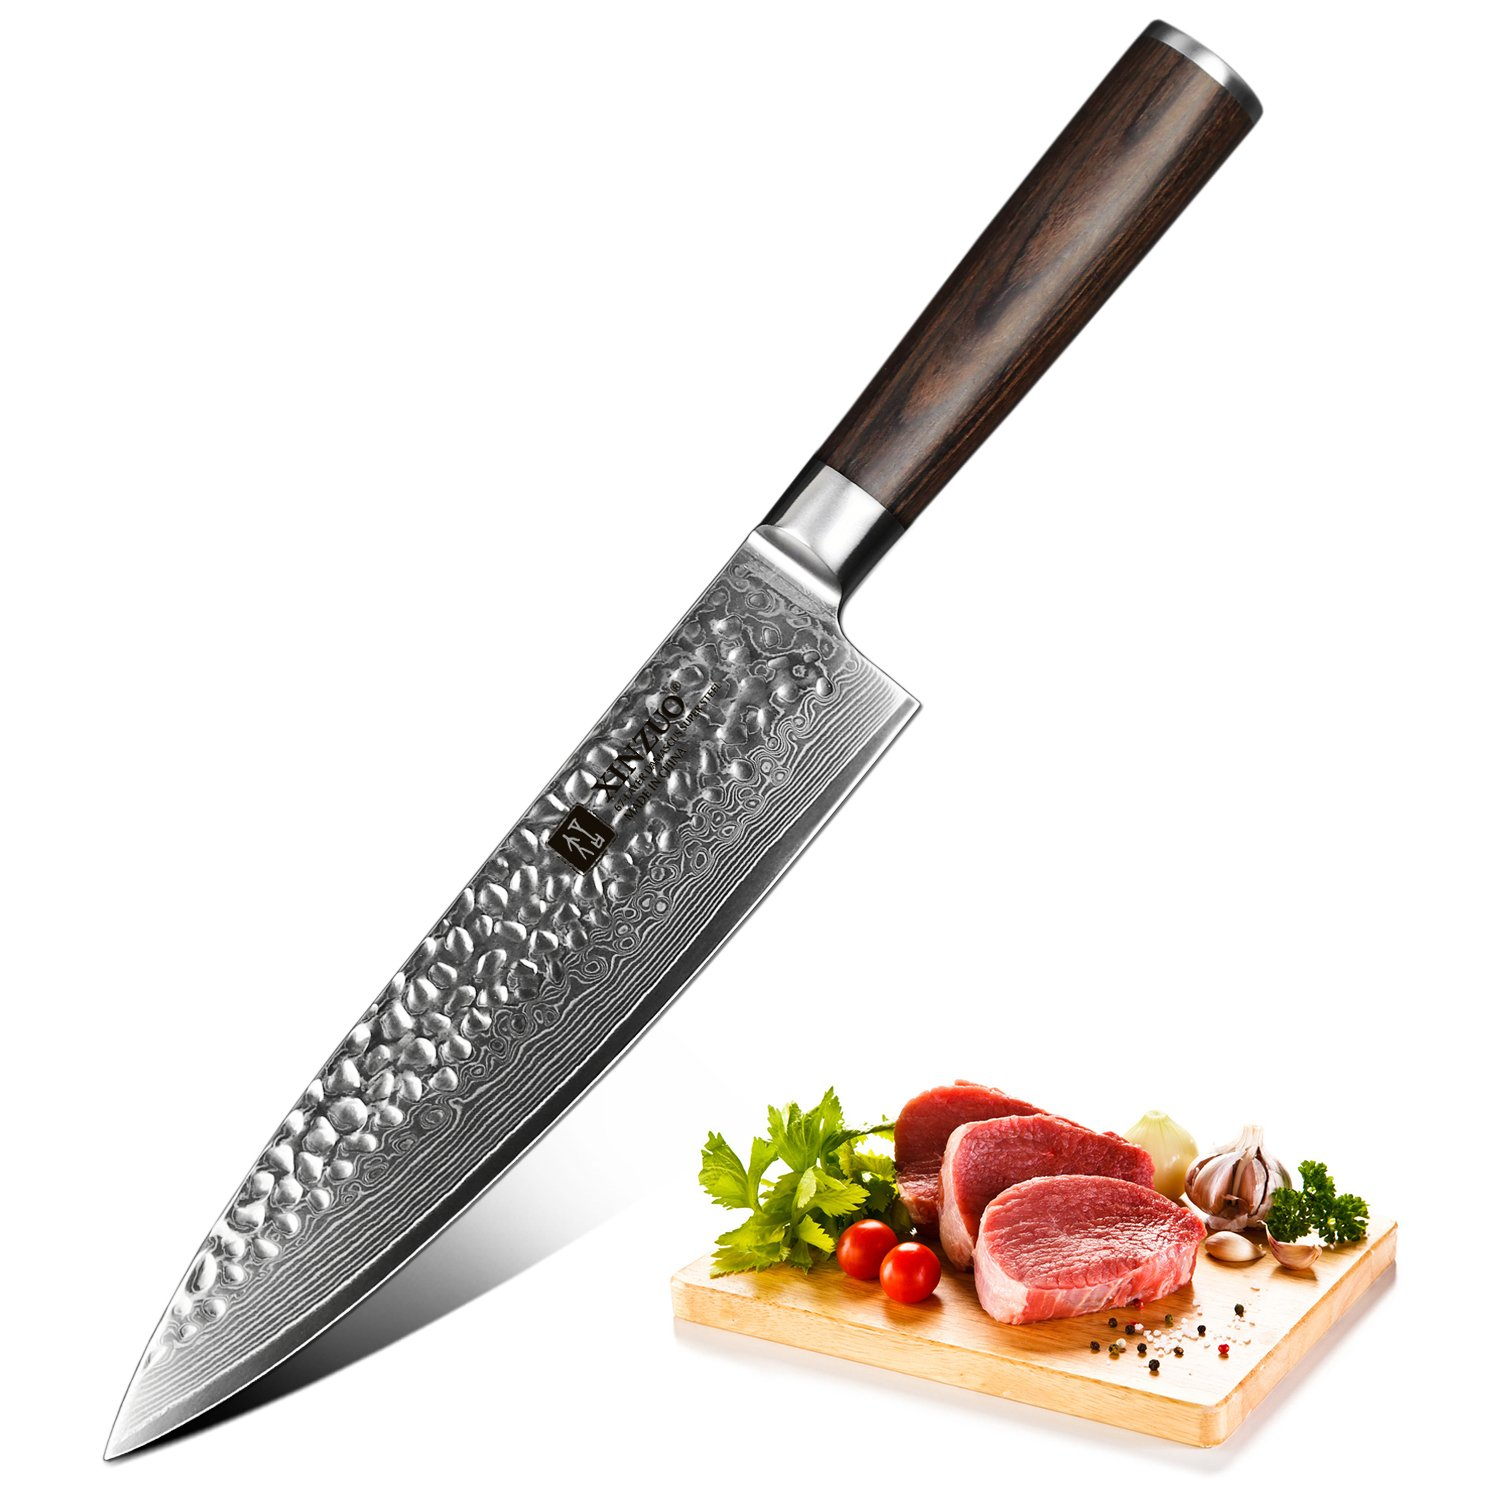 XINZUO Chef Knife 8 Inch 67 Layer Japanese VG10 Damascus Steel Kitchen Knife Hammered Finish High Carbon Japanese VG-10 Steel Professional Chef's Knives Razor Sharp with Pakkawood Handle - He Series